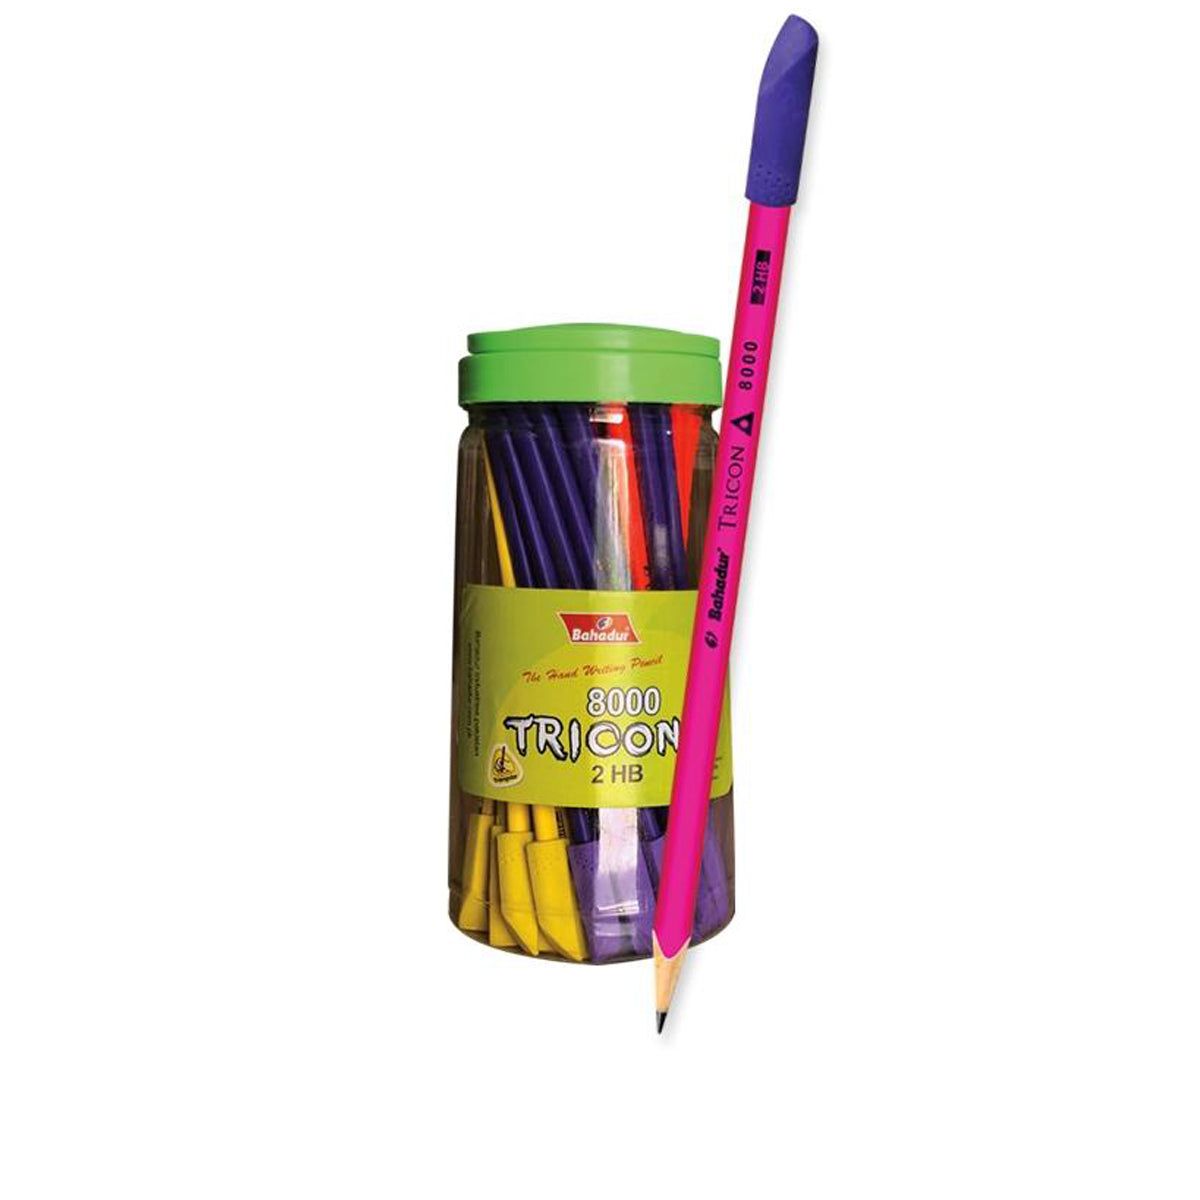 Bahadur The Hand Writing Pencil With Eraser-Assorted-JW239